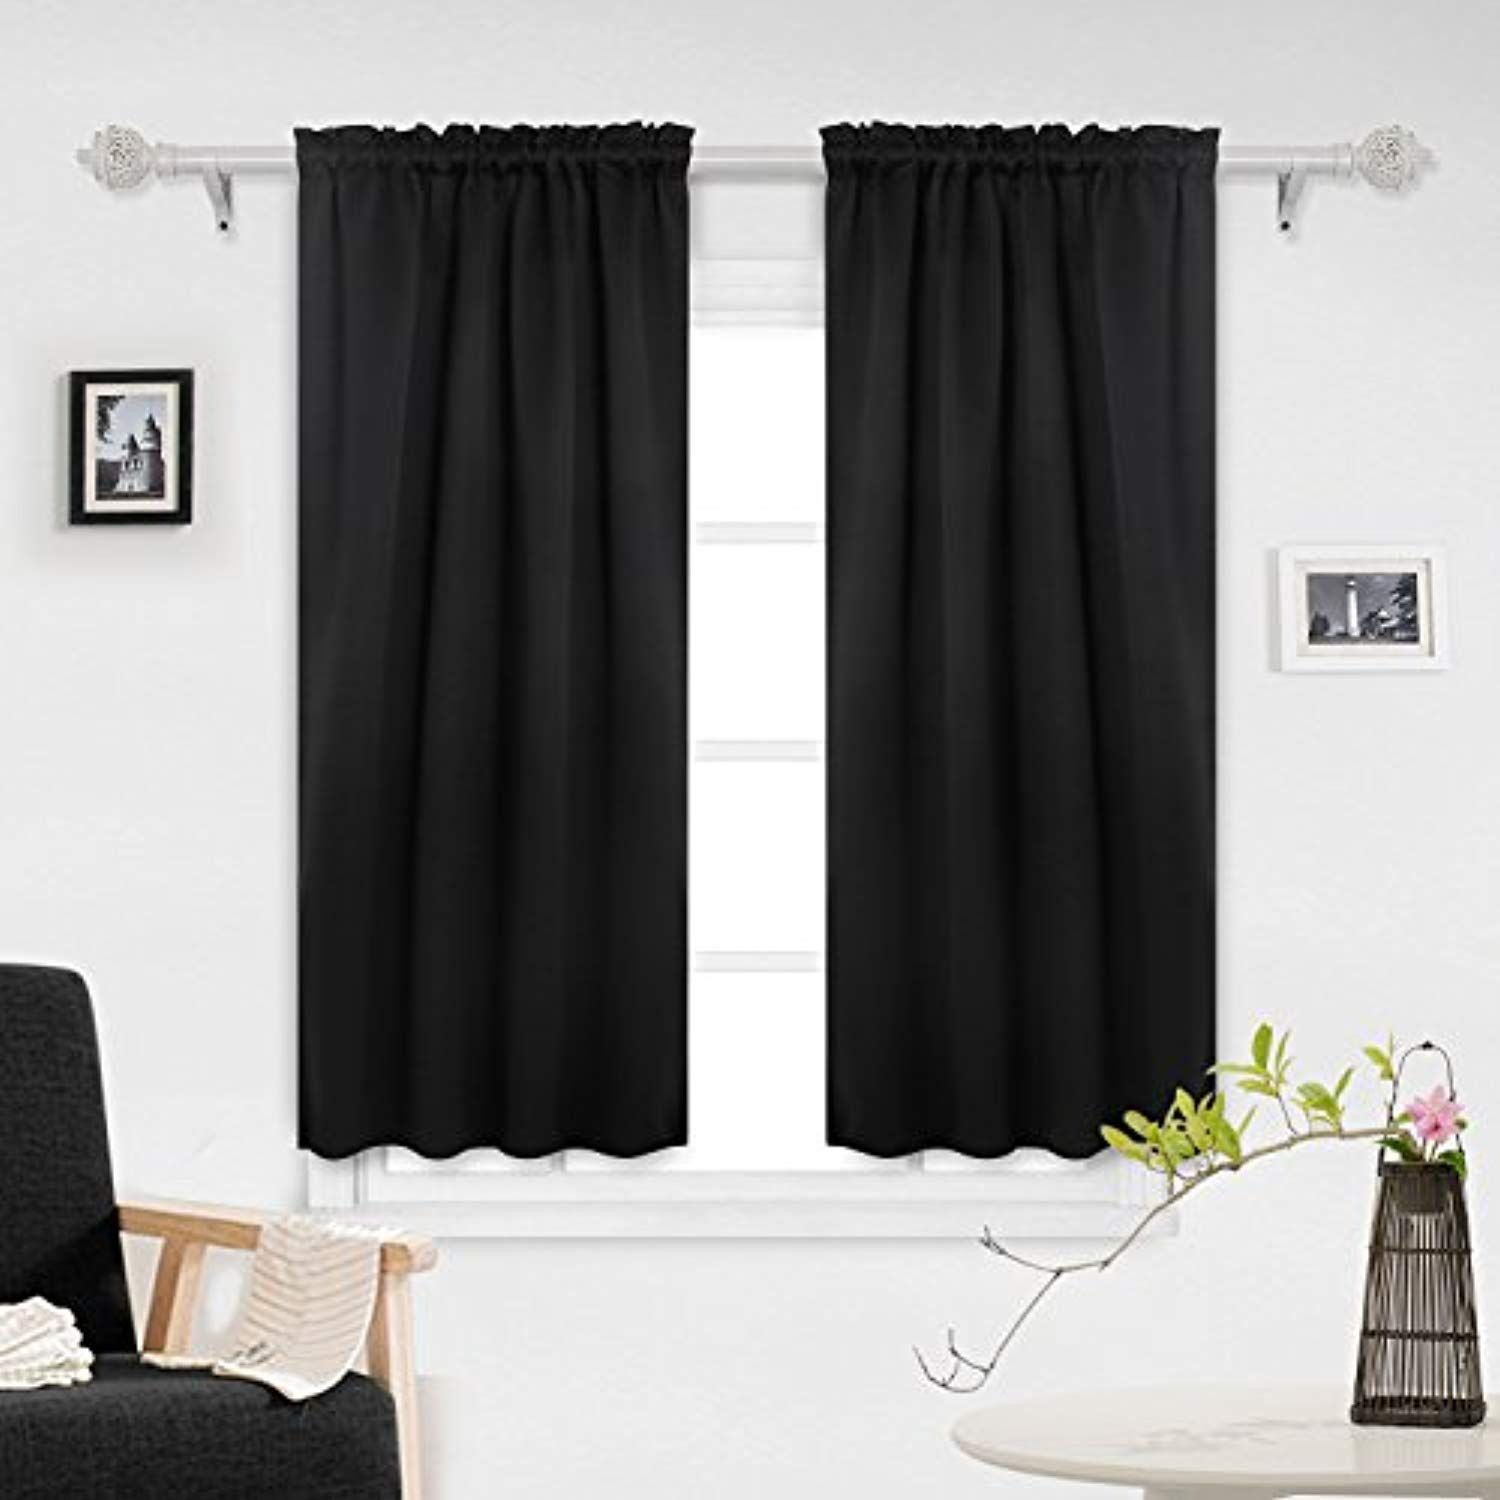 Deconovo Home Decorations Rod Pocket Curtains Blackout Curtains